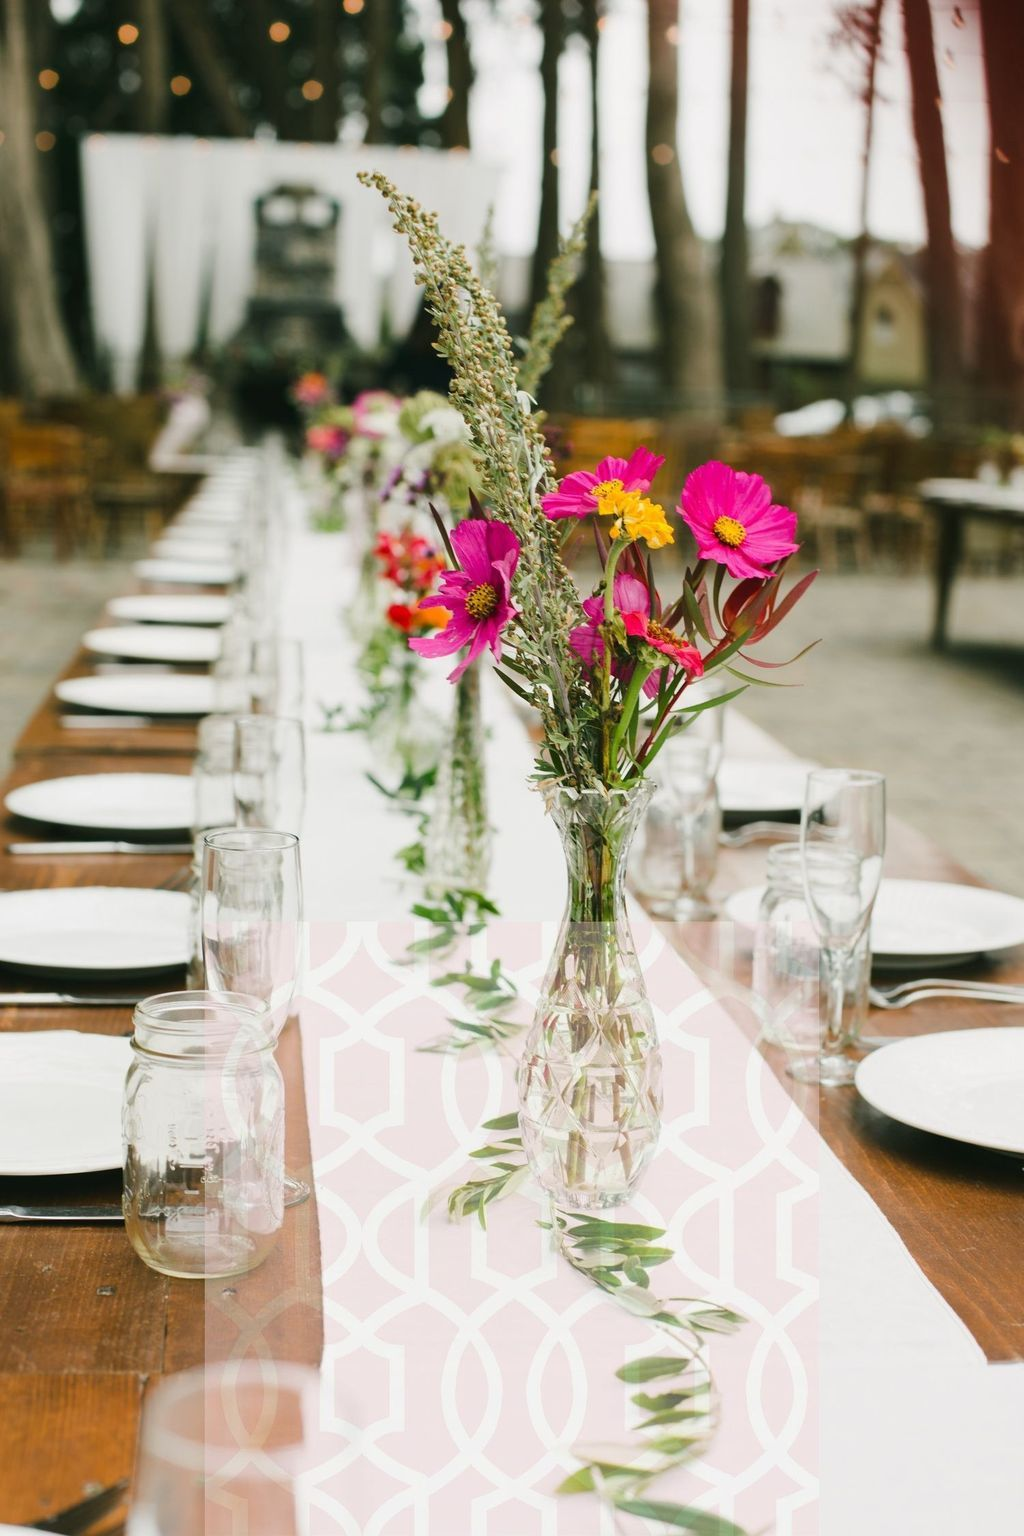 35 Lovely Bud Vase Centerpiece Decor Ideas For Your Dining Table